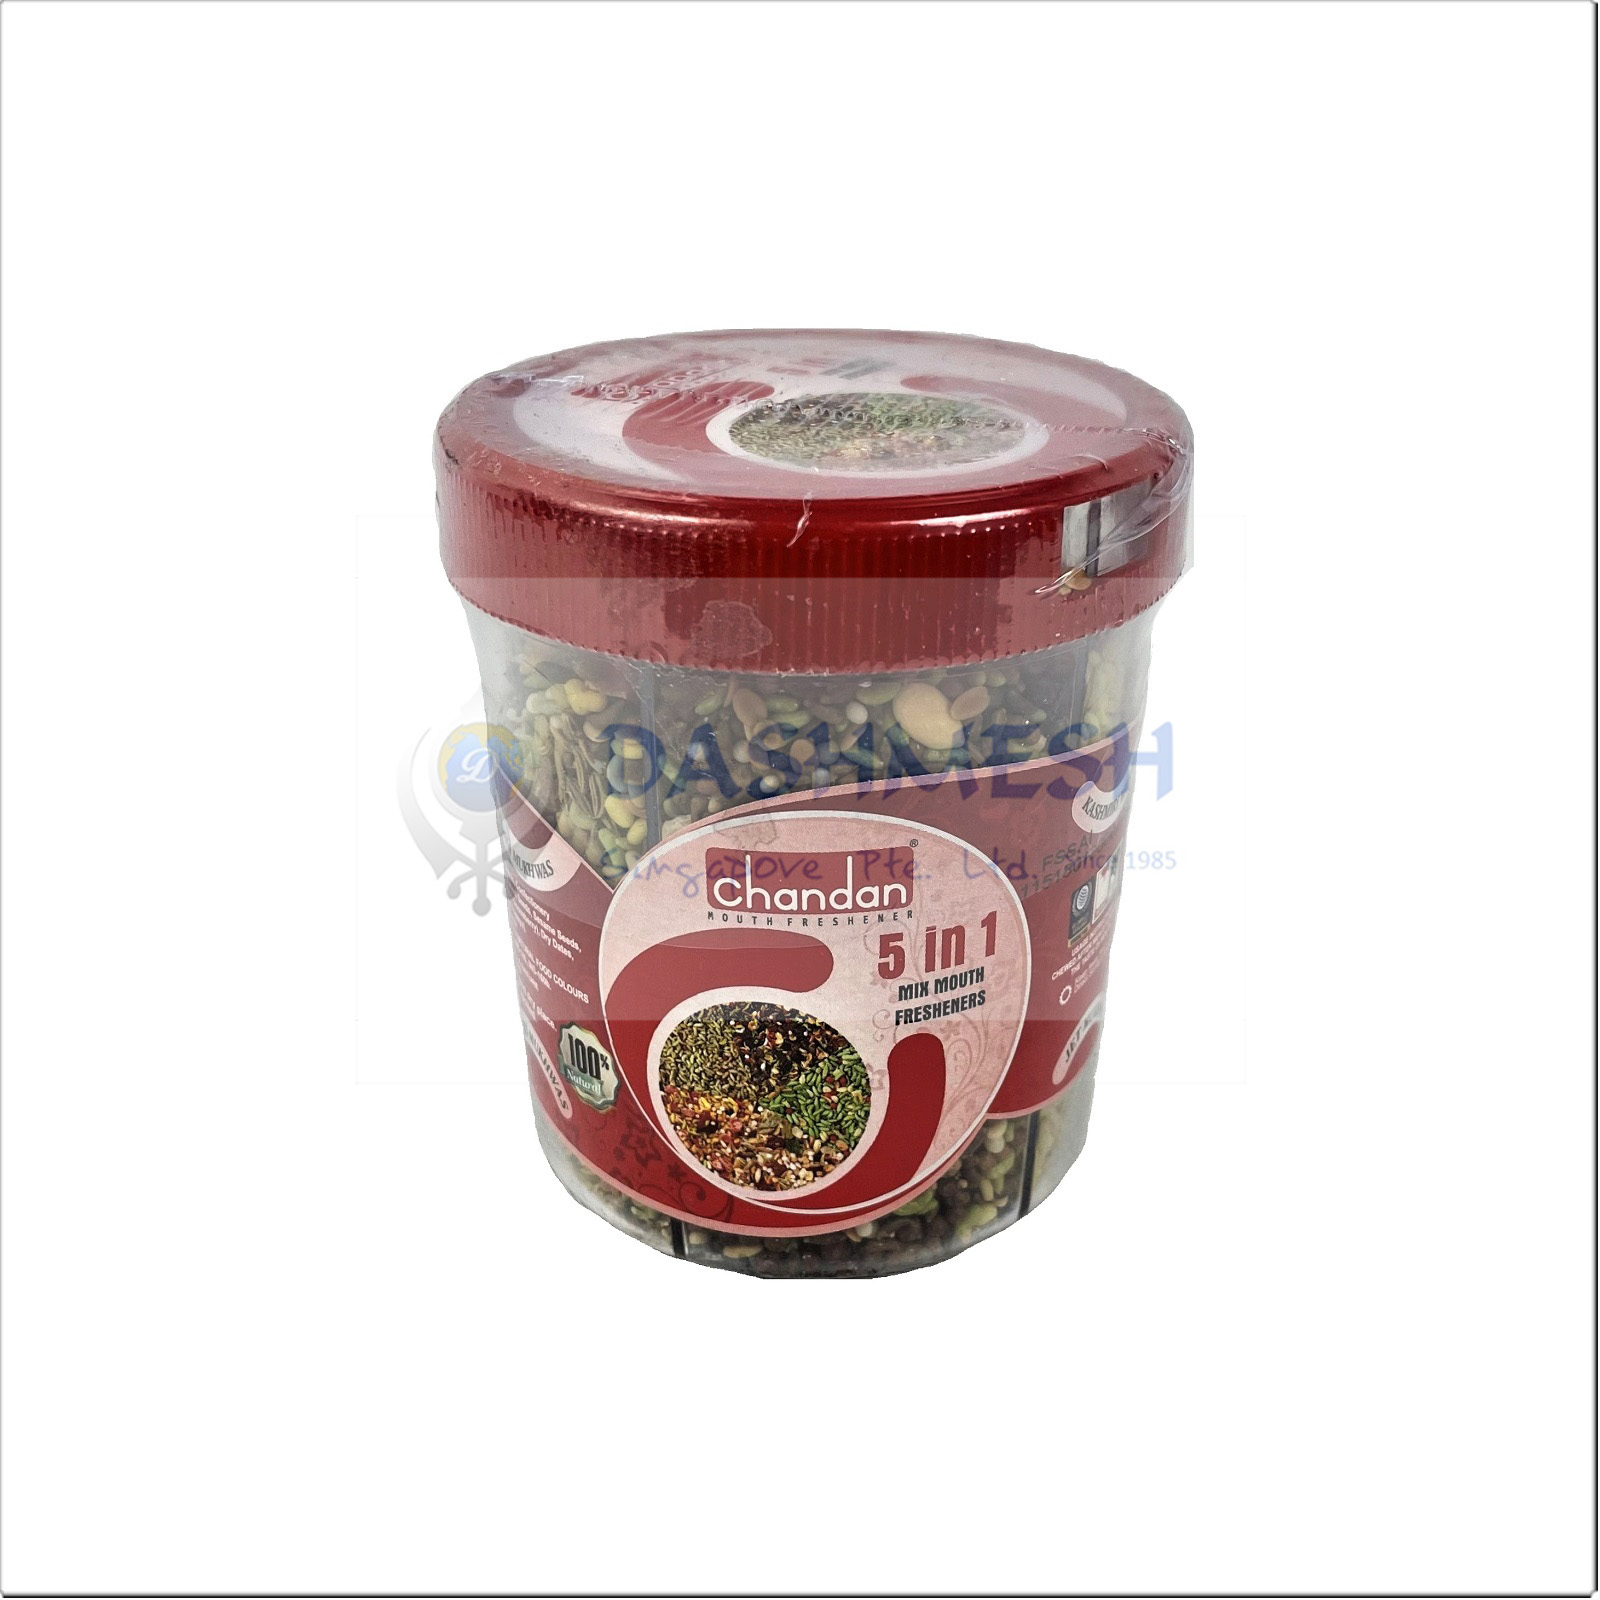 Chandan Mouth Fresheners (Mukhwas) 230g